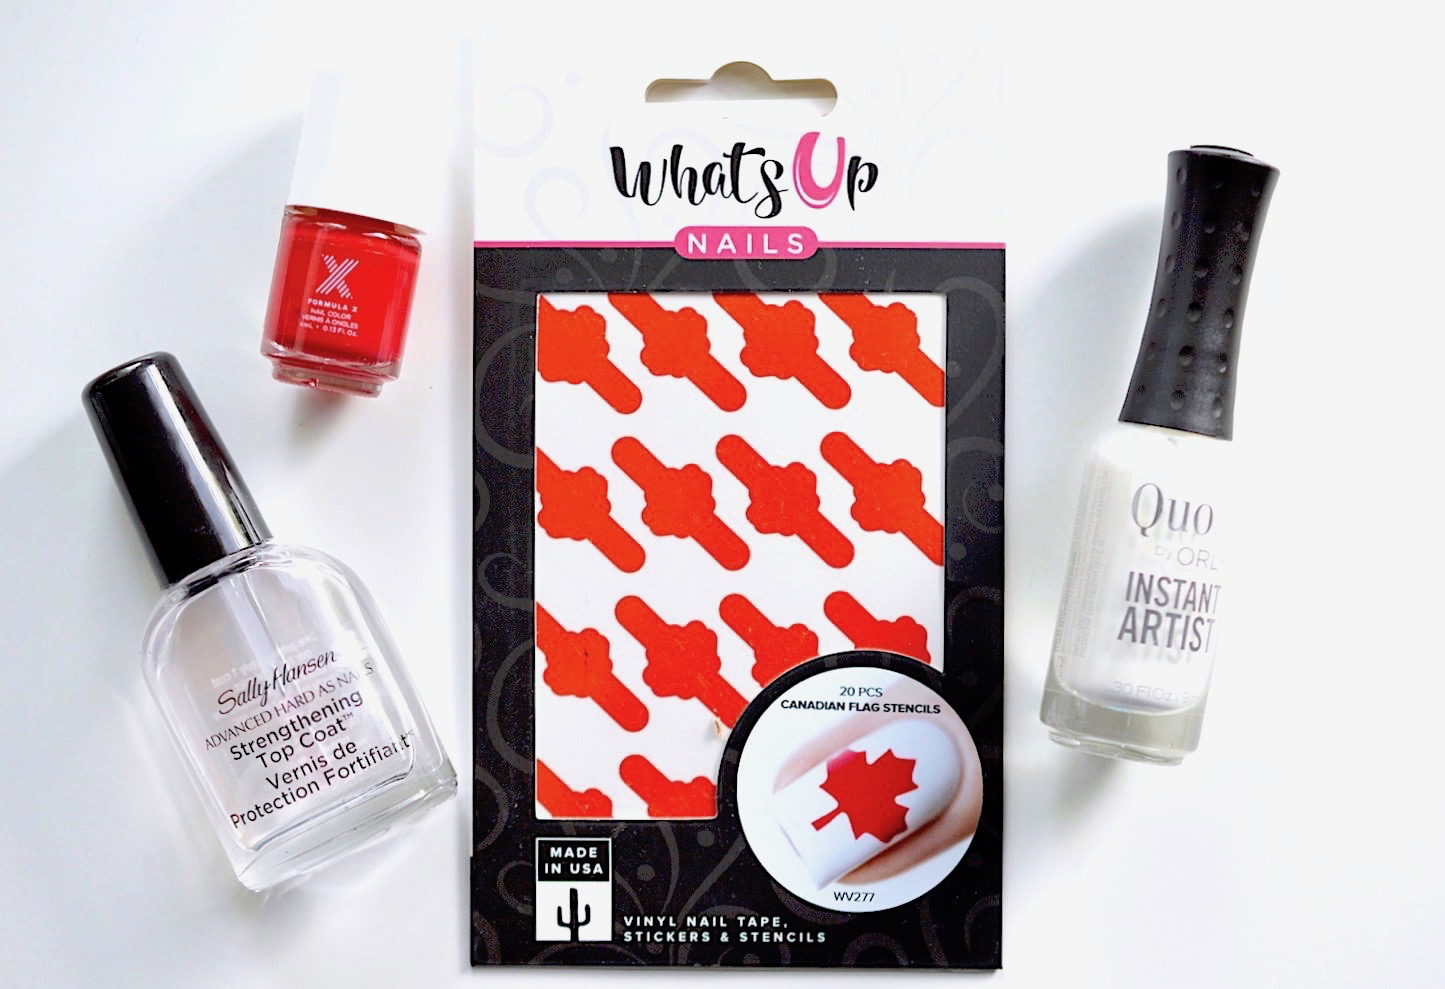 Canadian Flag Nail Vinyls